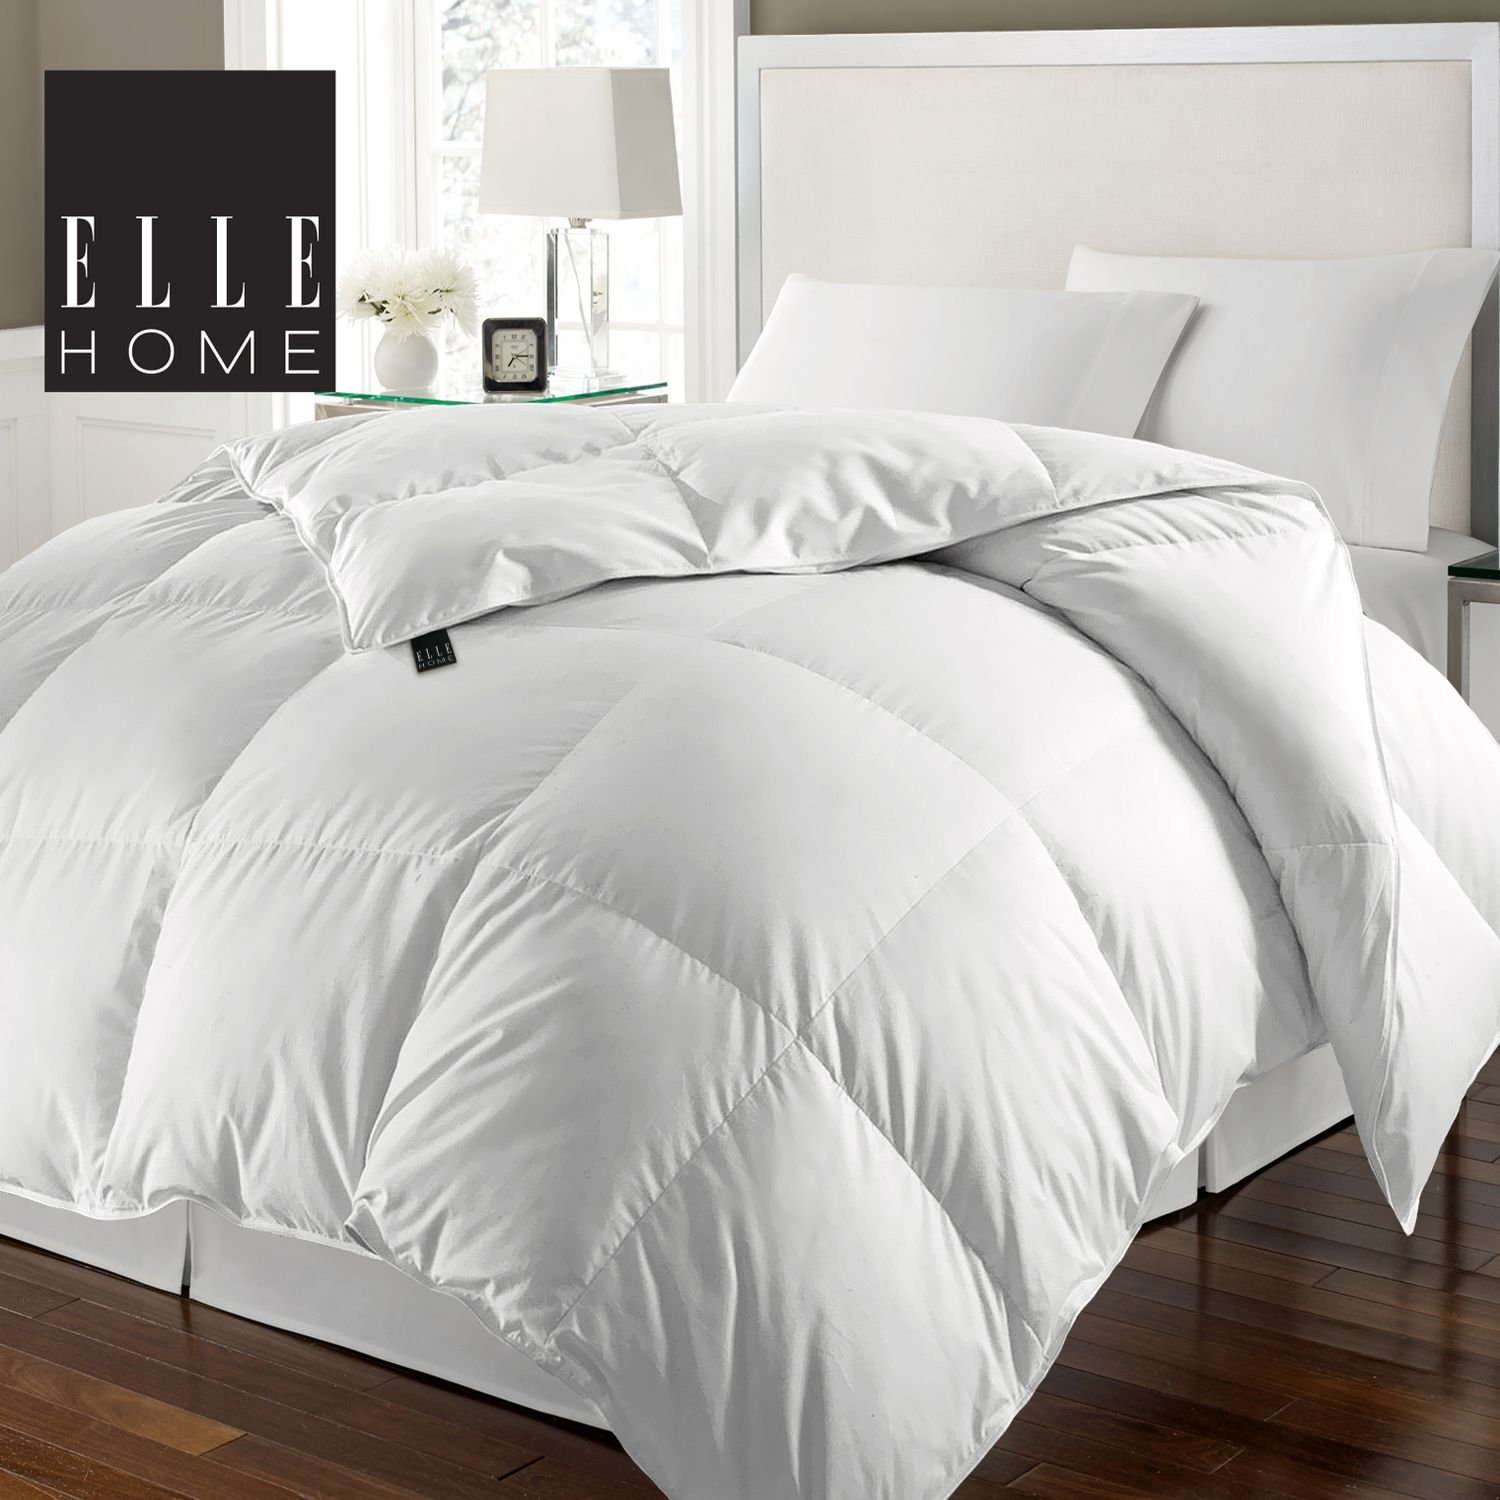 ELLE HOME 240 Thread Count 100% Cotton Solid Cover White Goose Feather and Goose Down Comforter King 104 x 88